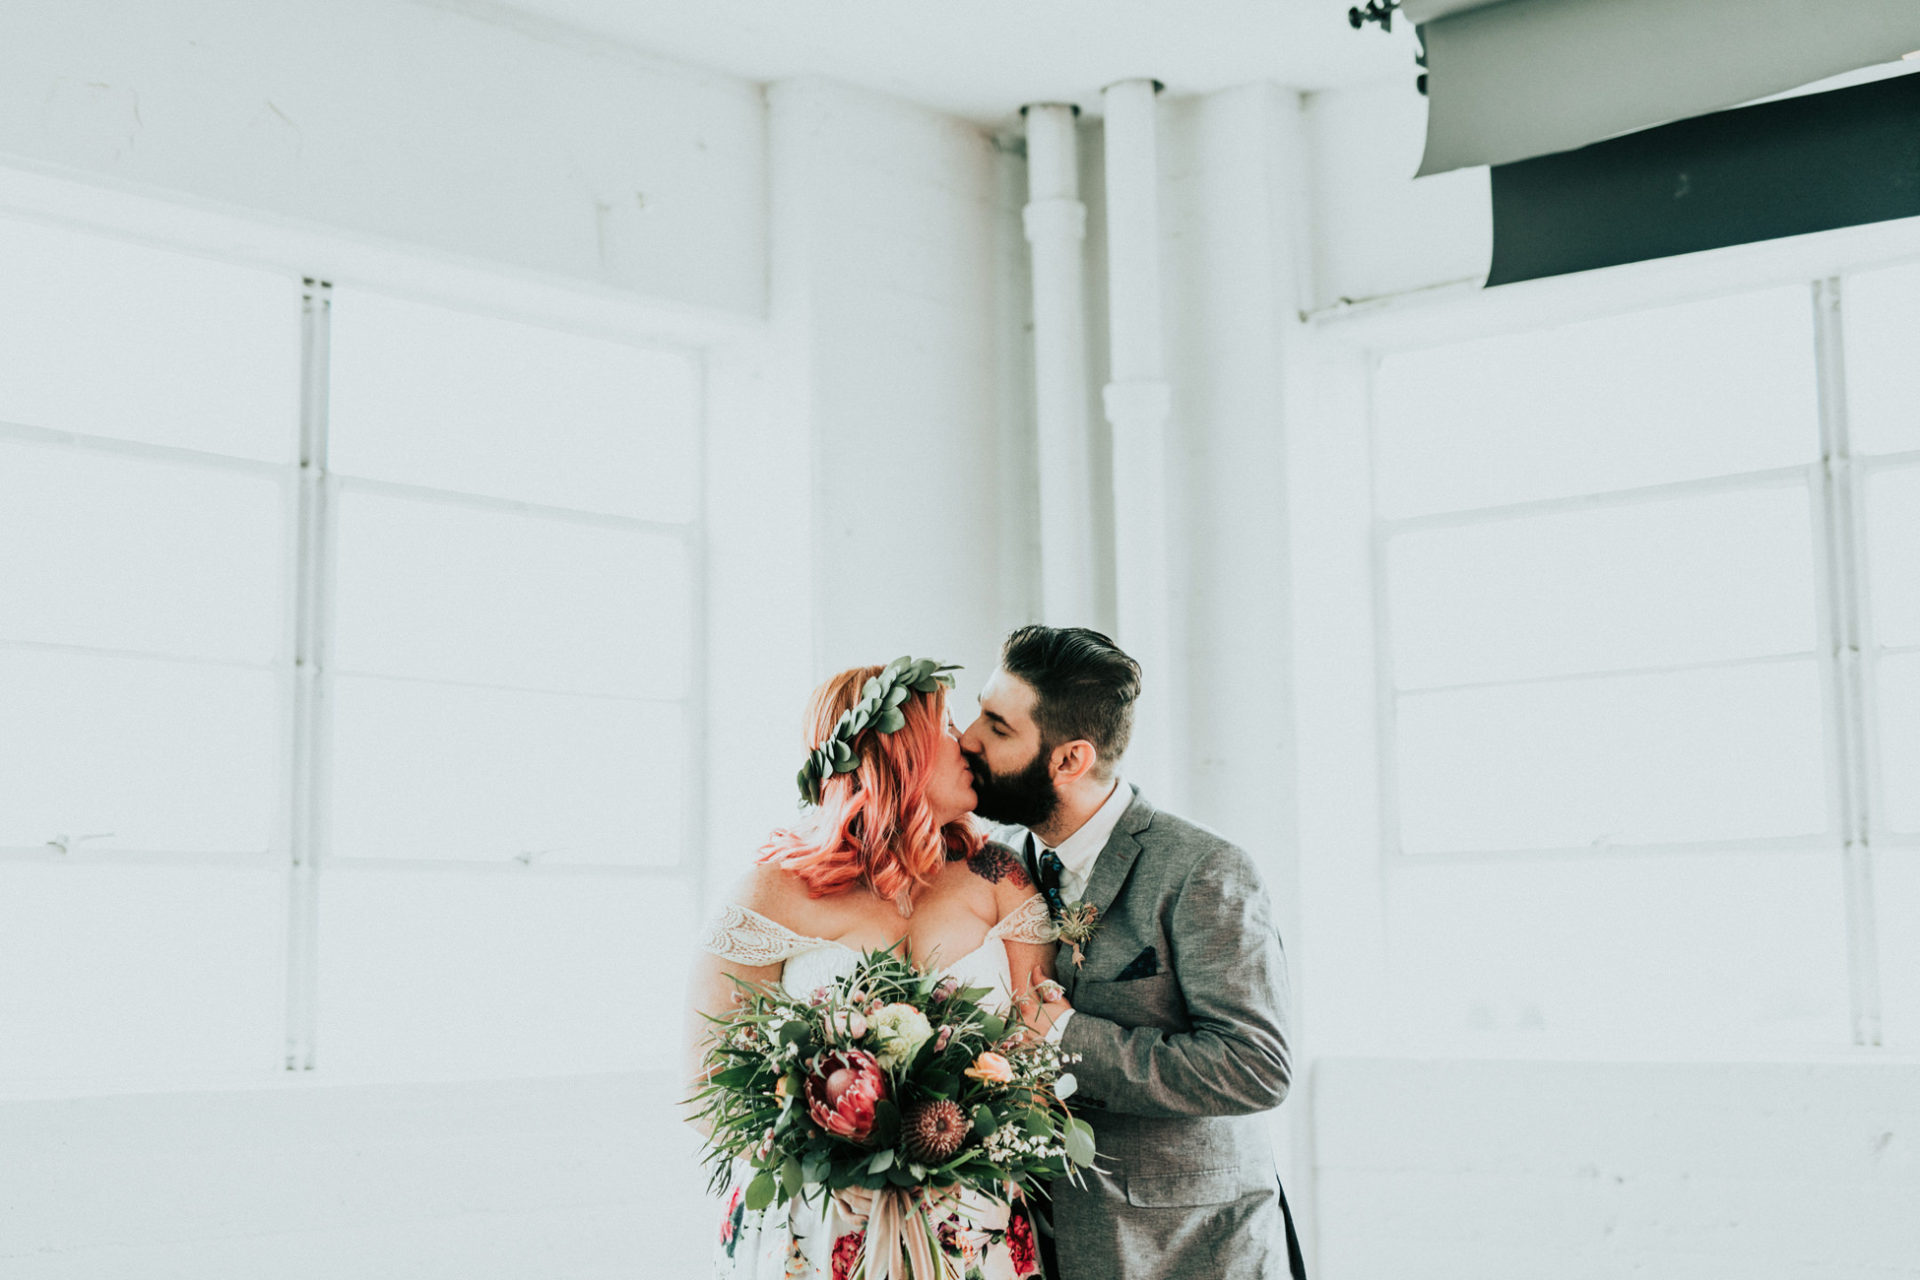 best-top-los-angeles-destination-wedding-photographer-hipster-modern-quirky-editorial-romantic-epic-32-bright-airy-fantasy